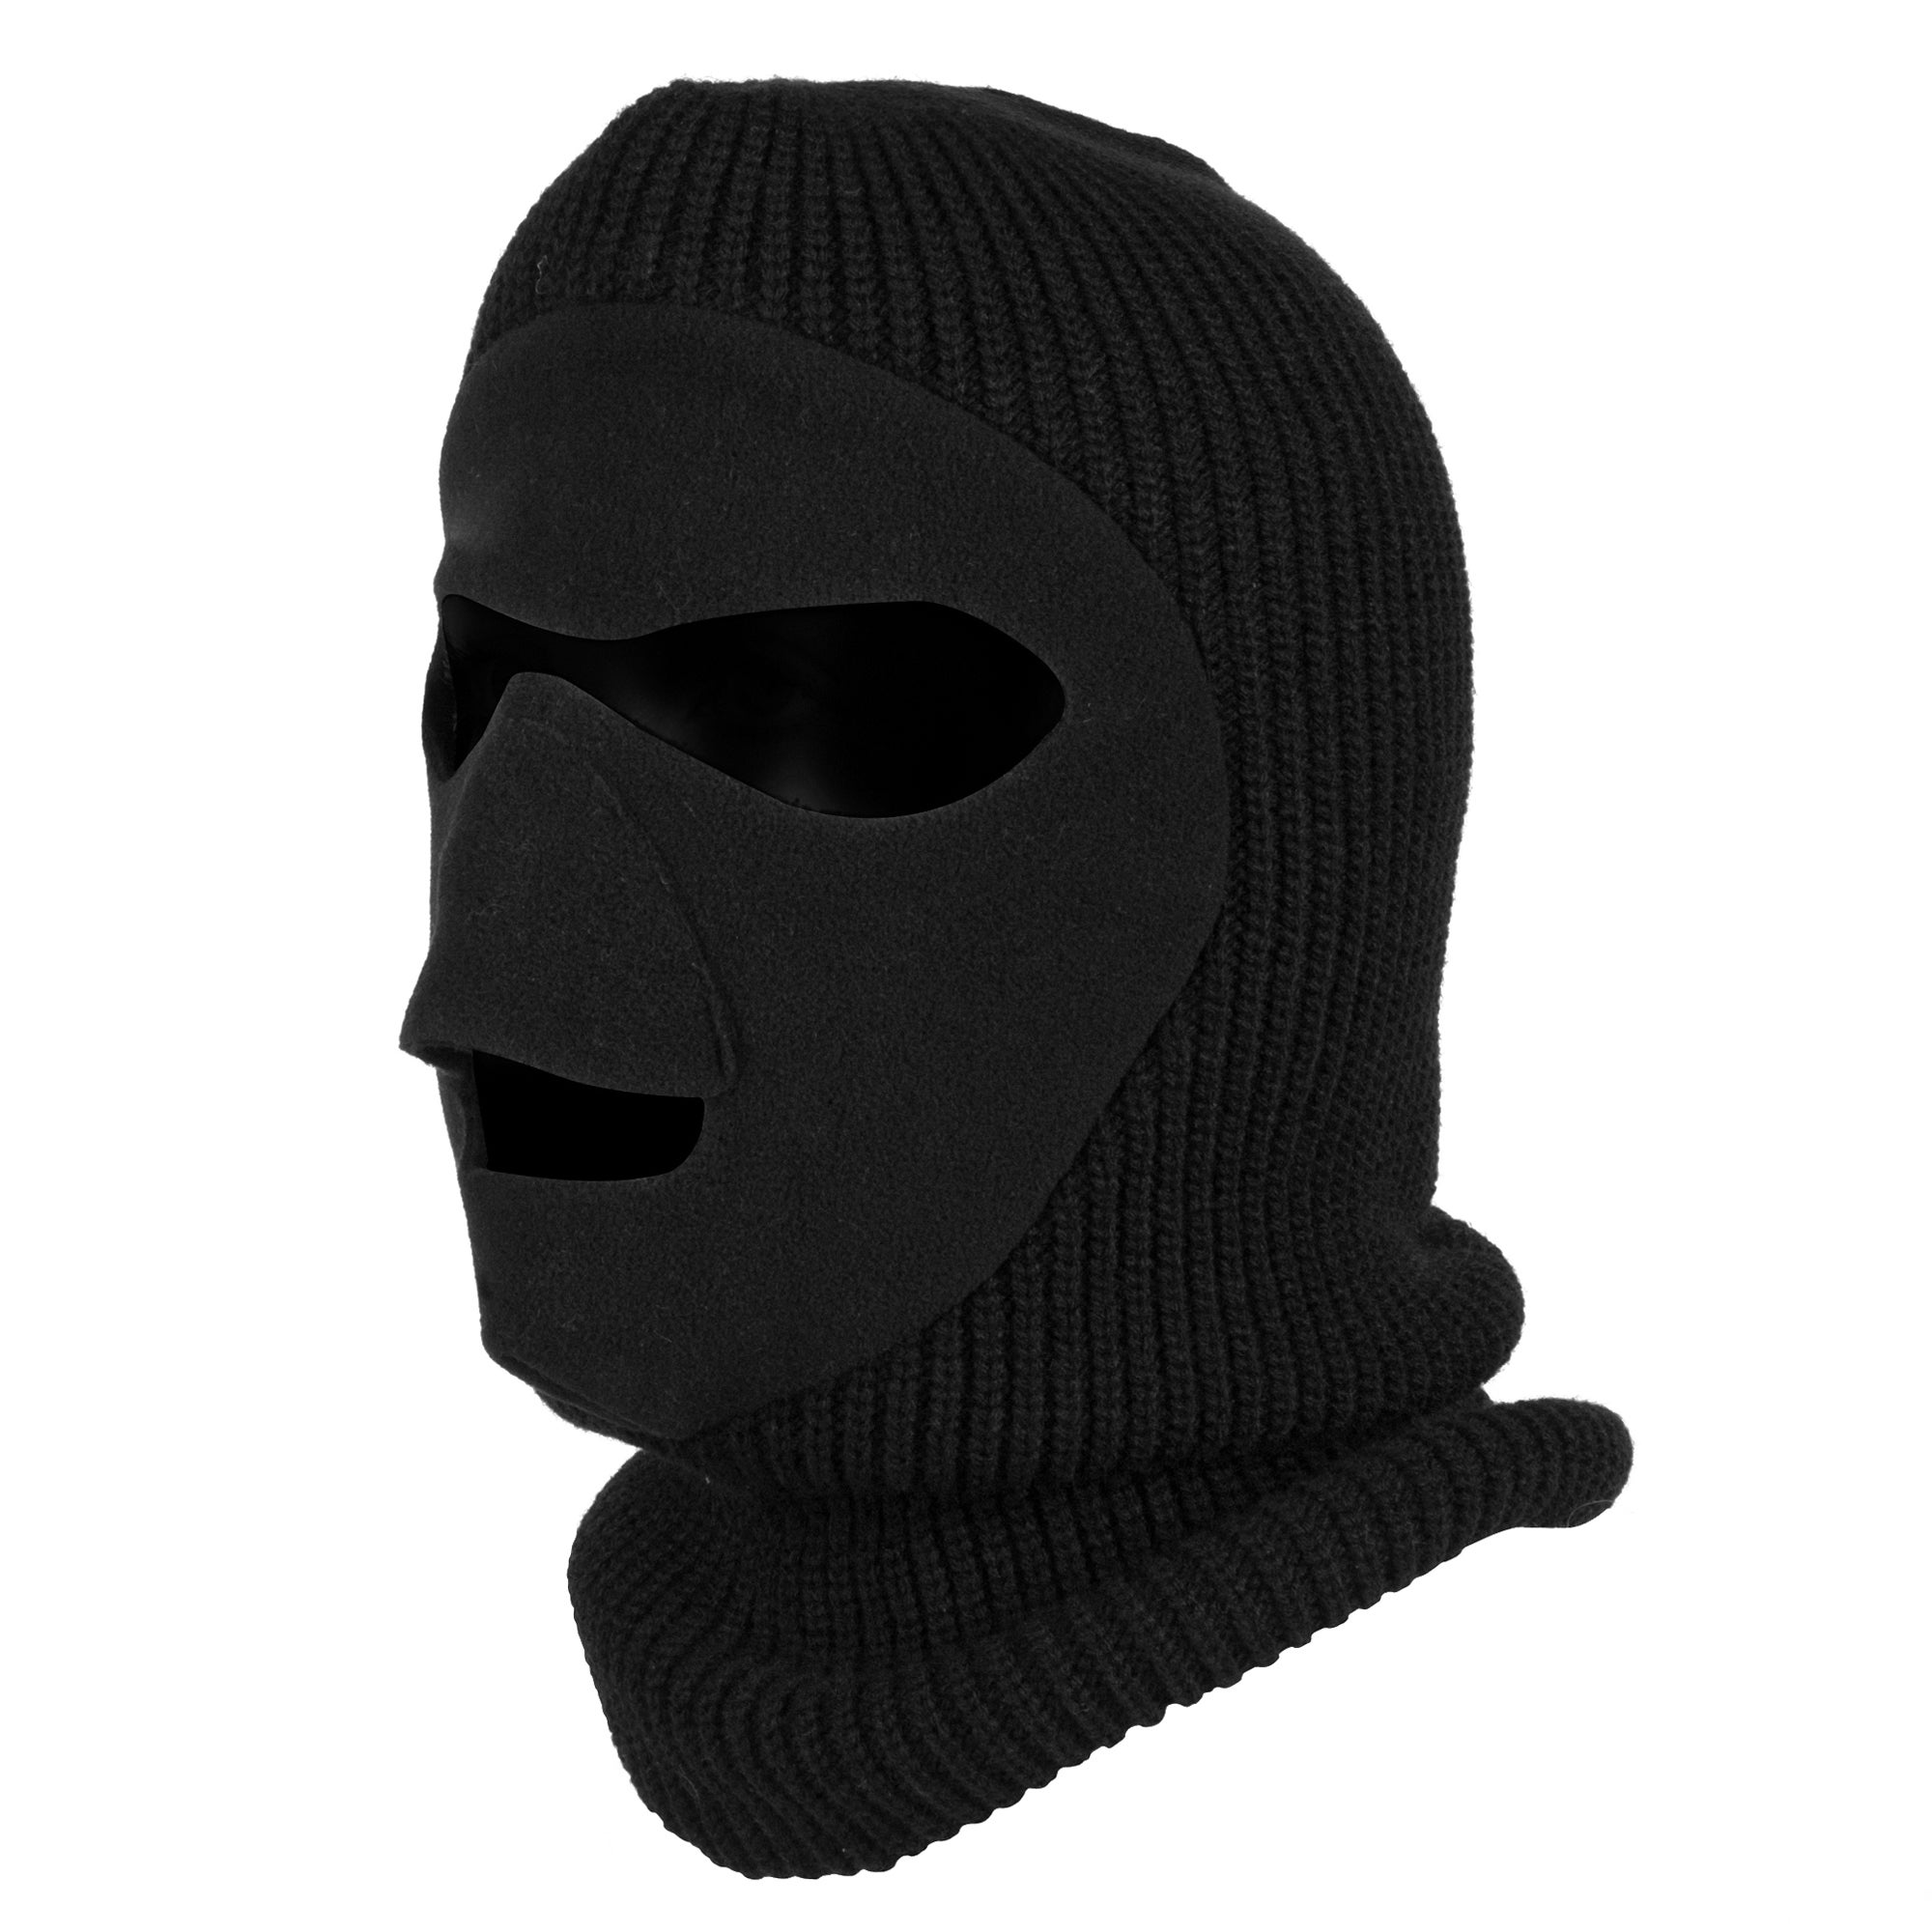 QuietWear Black Knit-and-Fleece Patented Mask